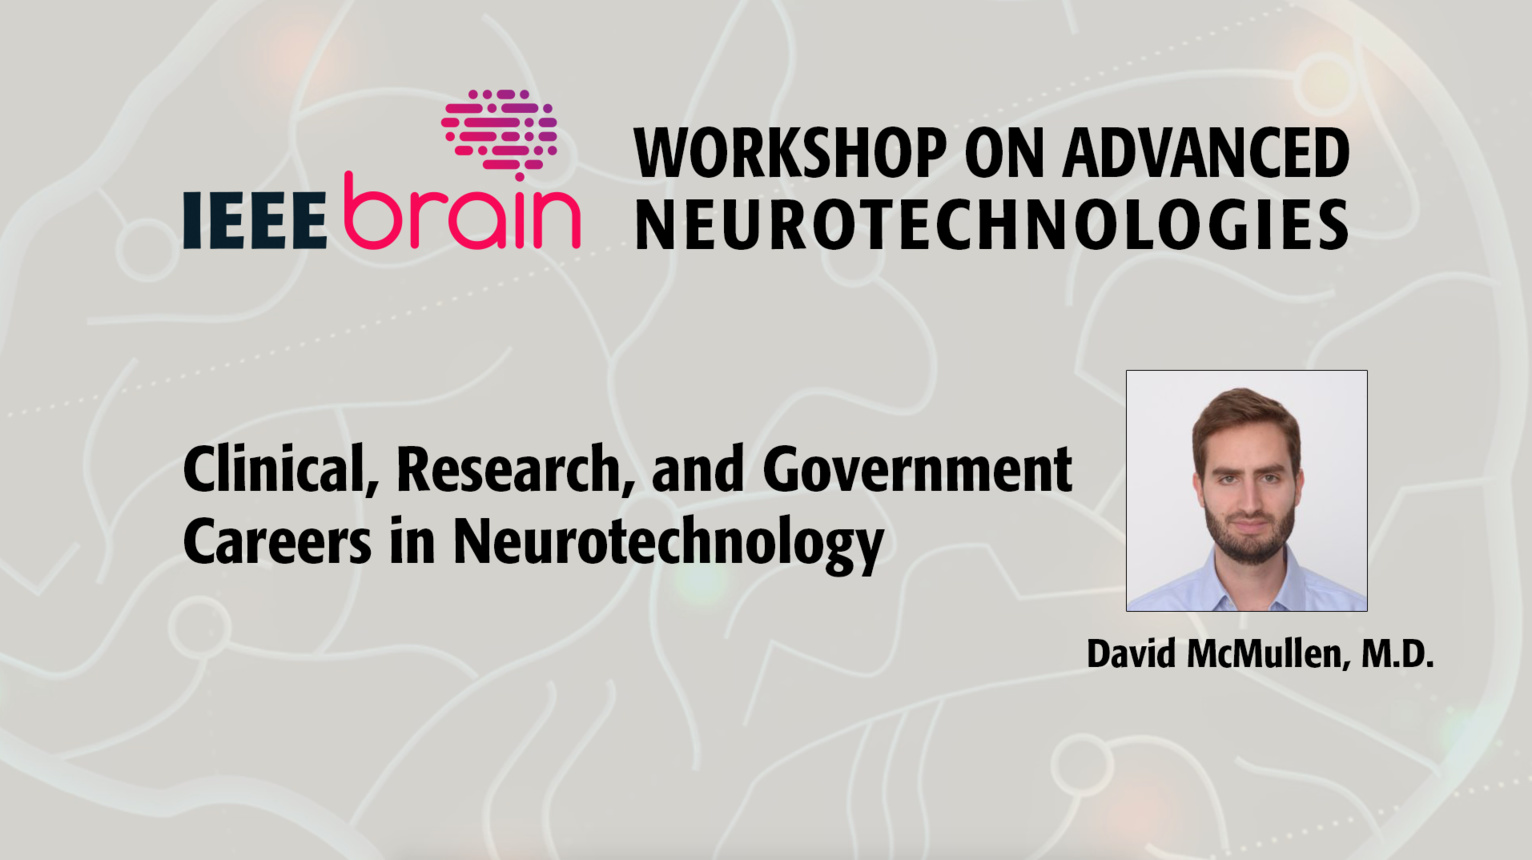 Clinical, Research, and Government Careers in Neurotechnology - IEEE Brain Workshop